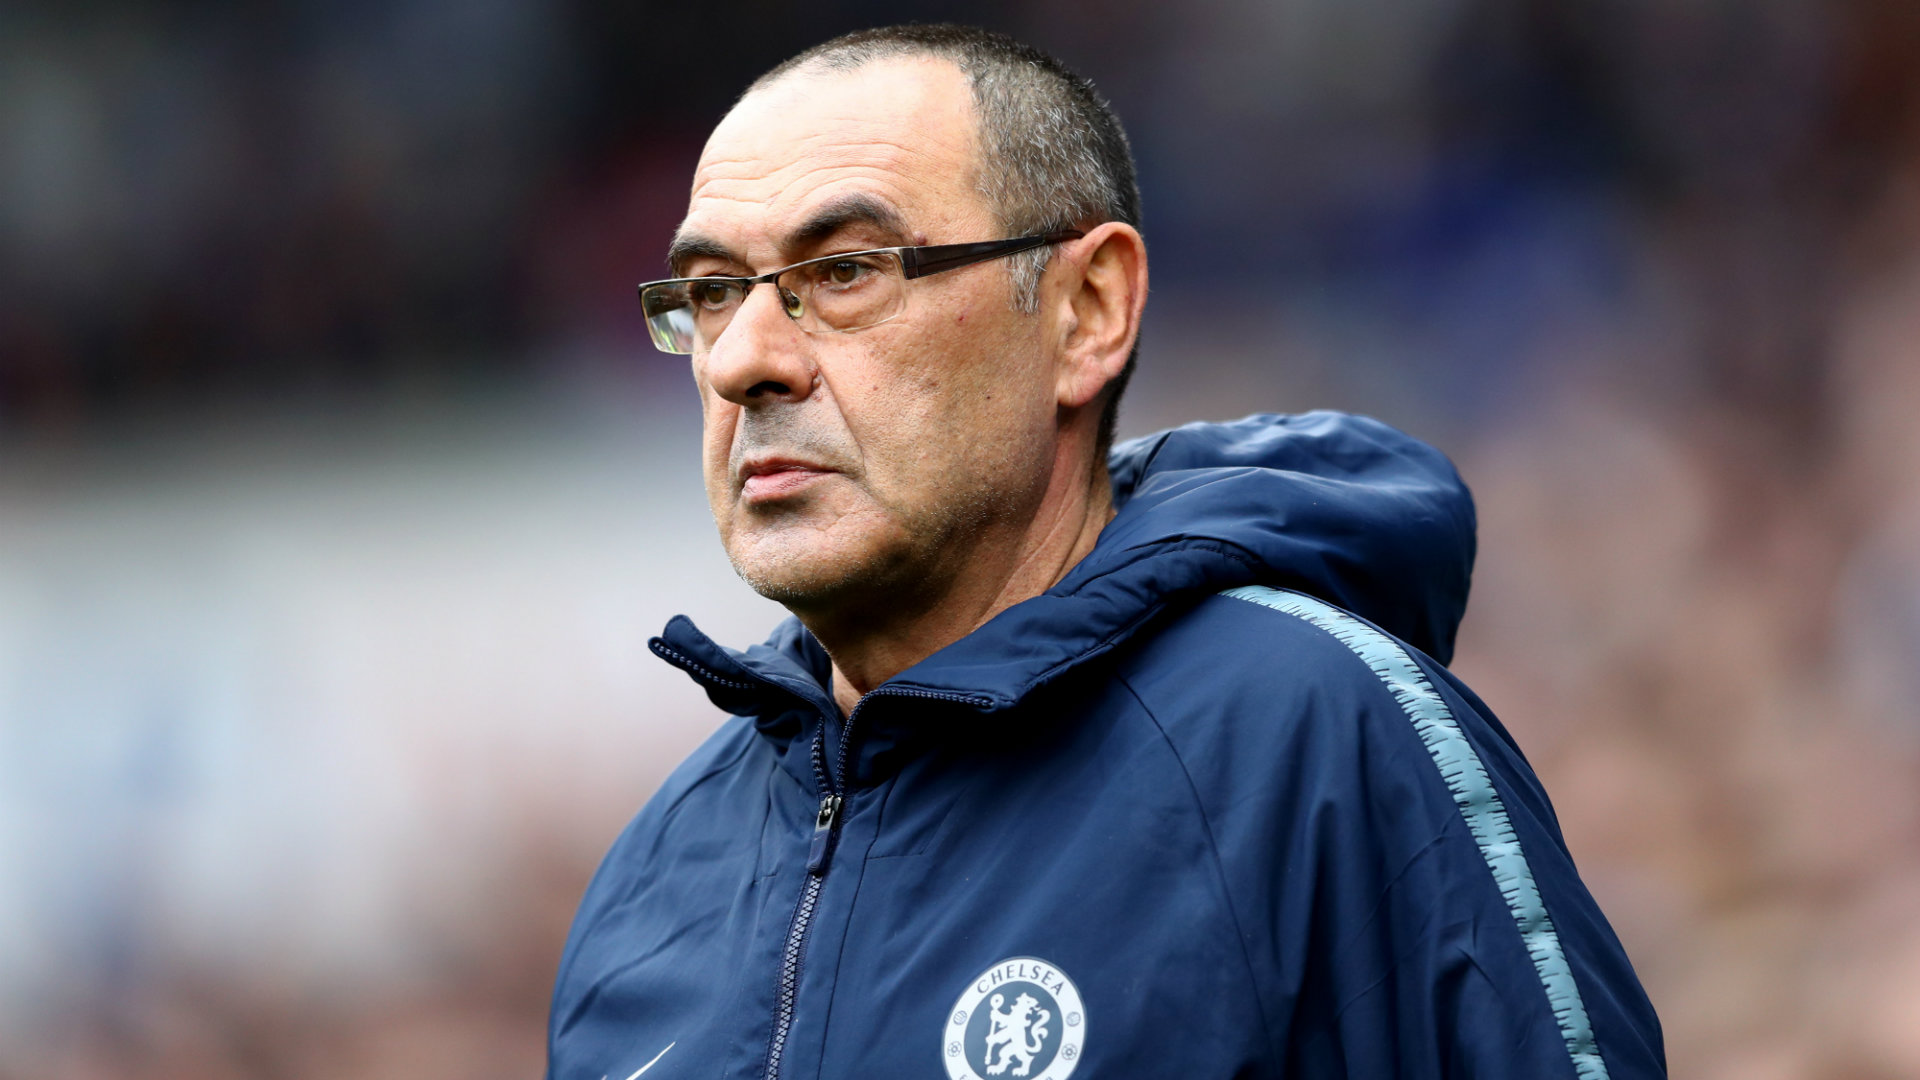 Ex-Chelsea striker Sutton: 'Erratic' Sarri running out of time